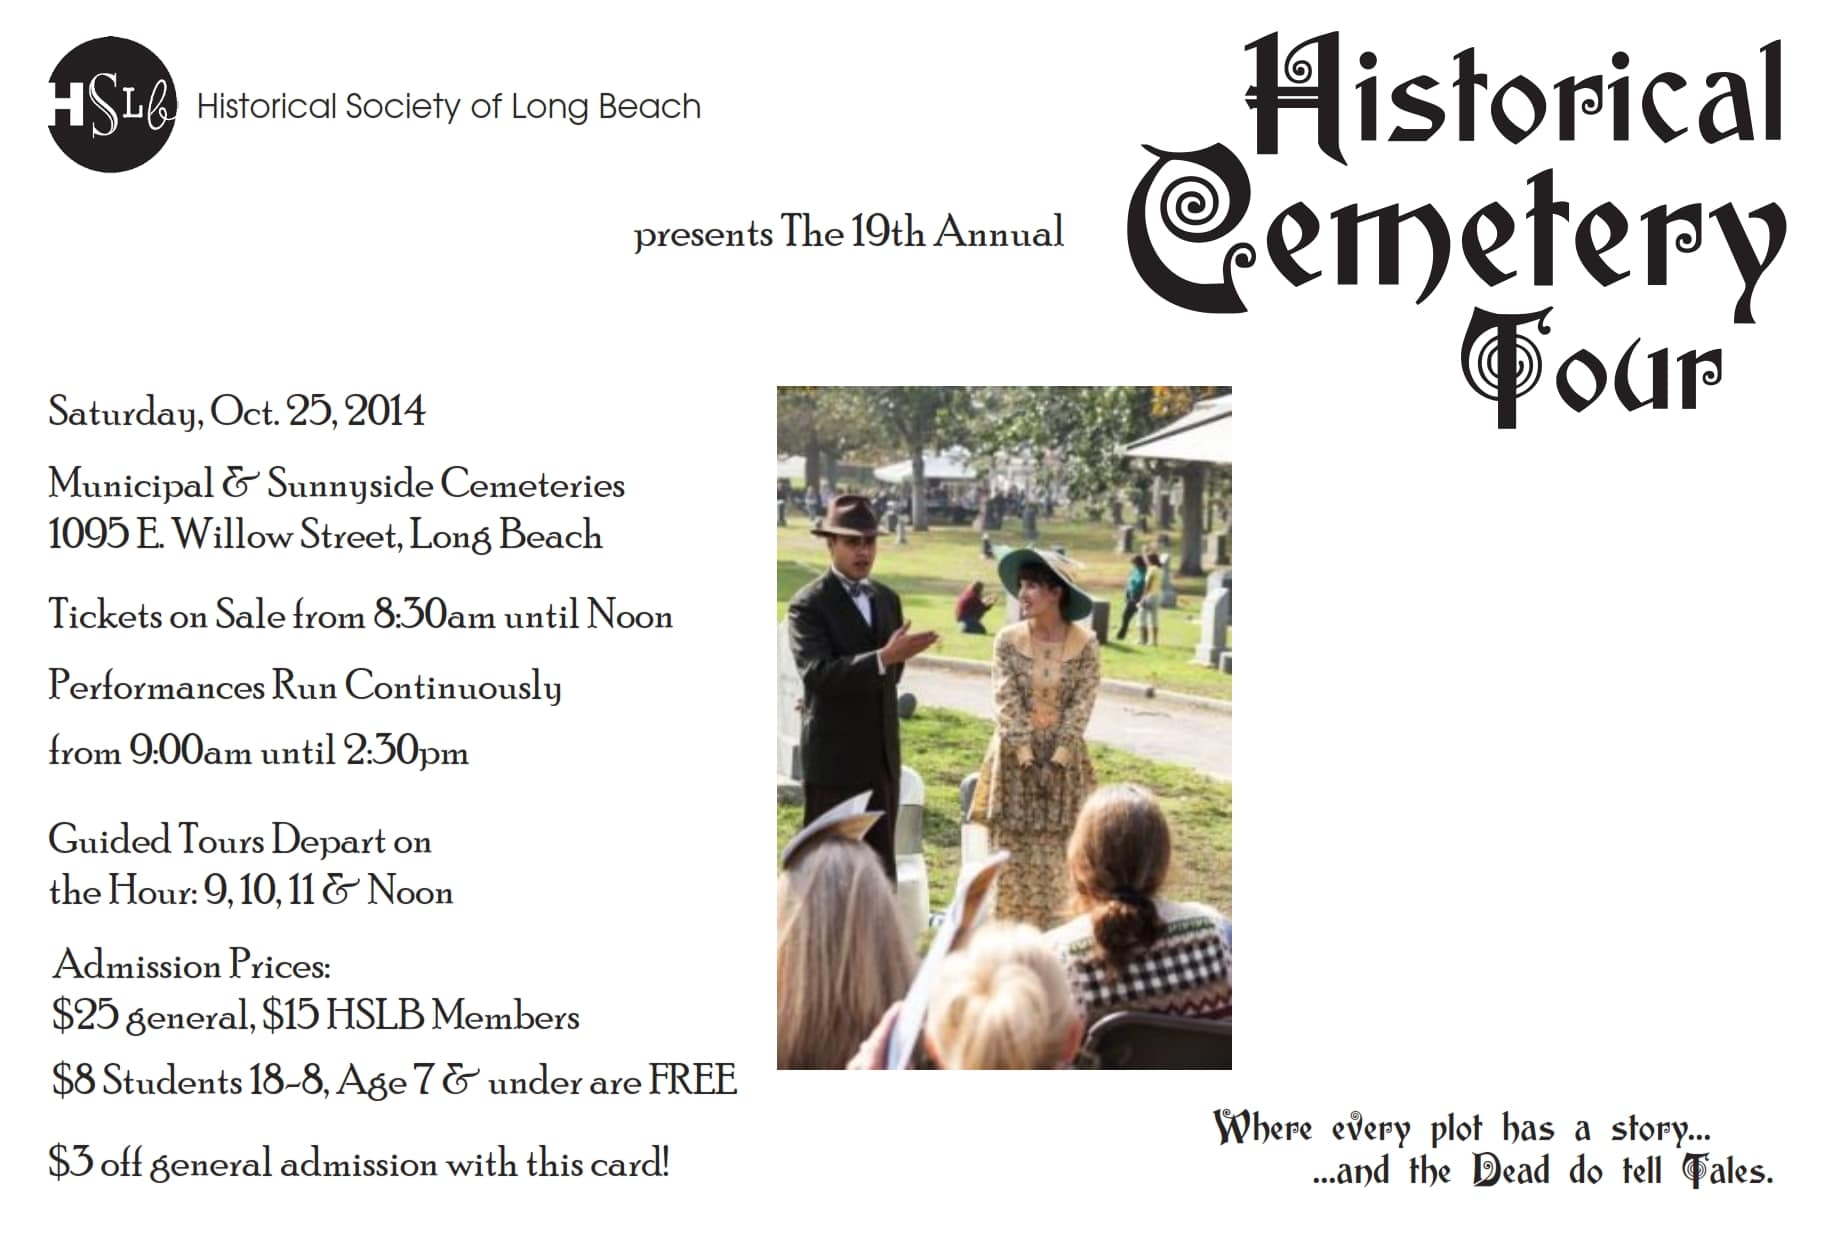 Saturday, Oct. 25, 2014 Municipal & Sunnyside Cemeteries 1095 E. Willow Street, Long Beach Tickets on Sale from 8:30am until Noon Performances Run Continuously from 9:00am until 2:30pm Guided Tours Depart on the Hour: 9, 10, 11 & Noon Admission Prices:  $25 general, $15 HSLB Members $8 Students 18-8, Age 7 & under are FREE $3 off general admission with this card!